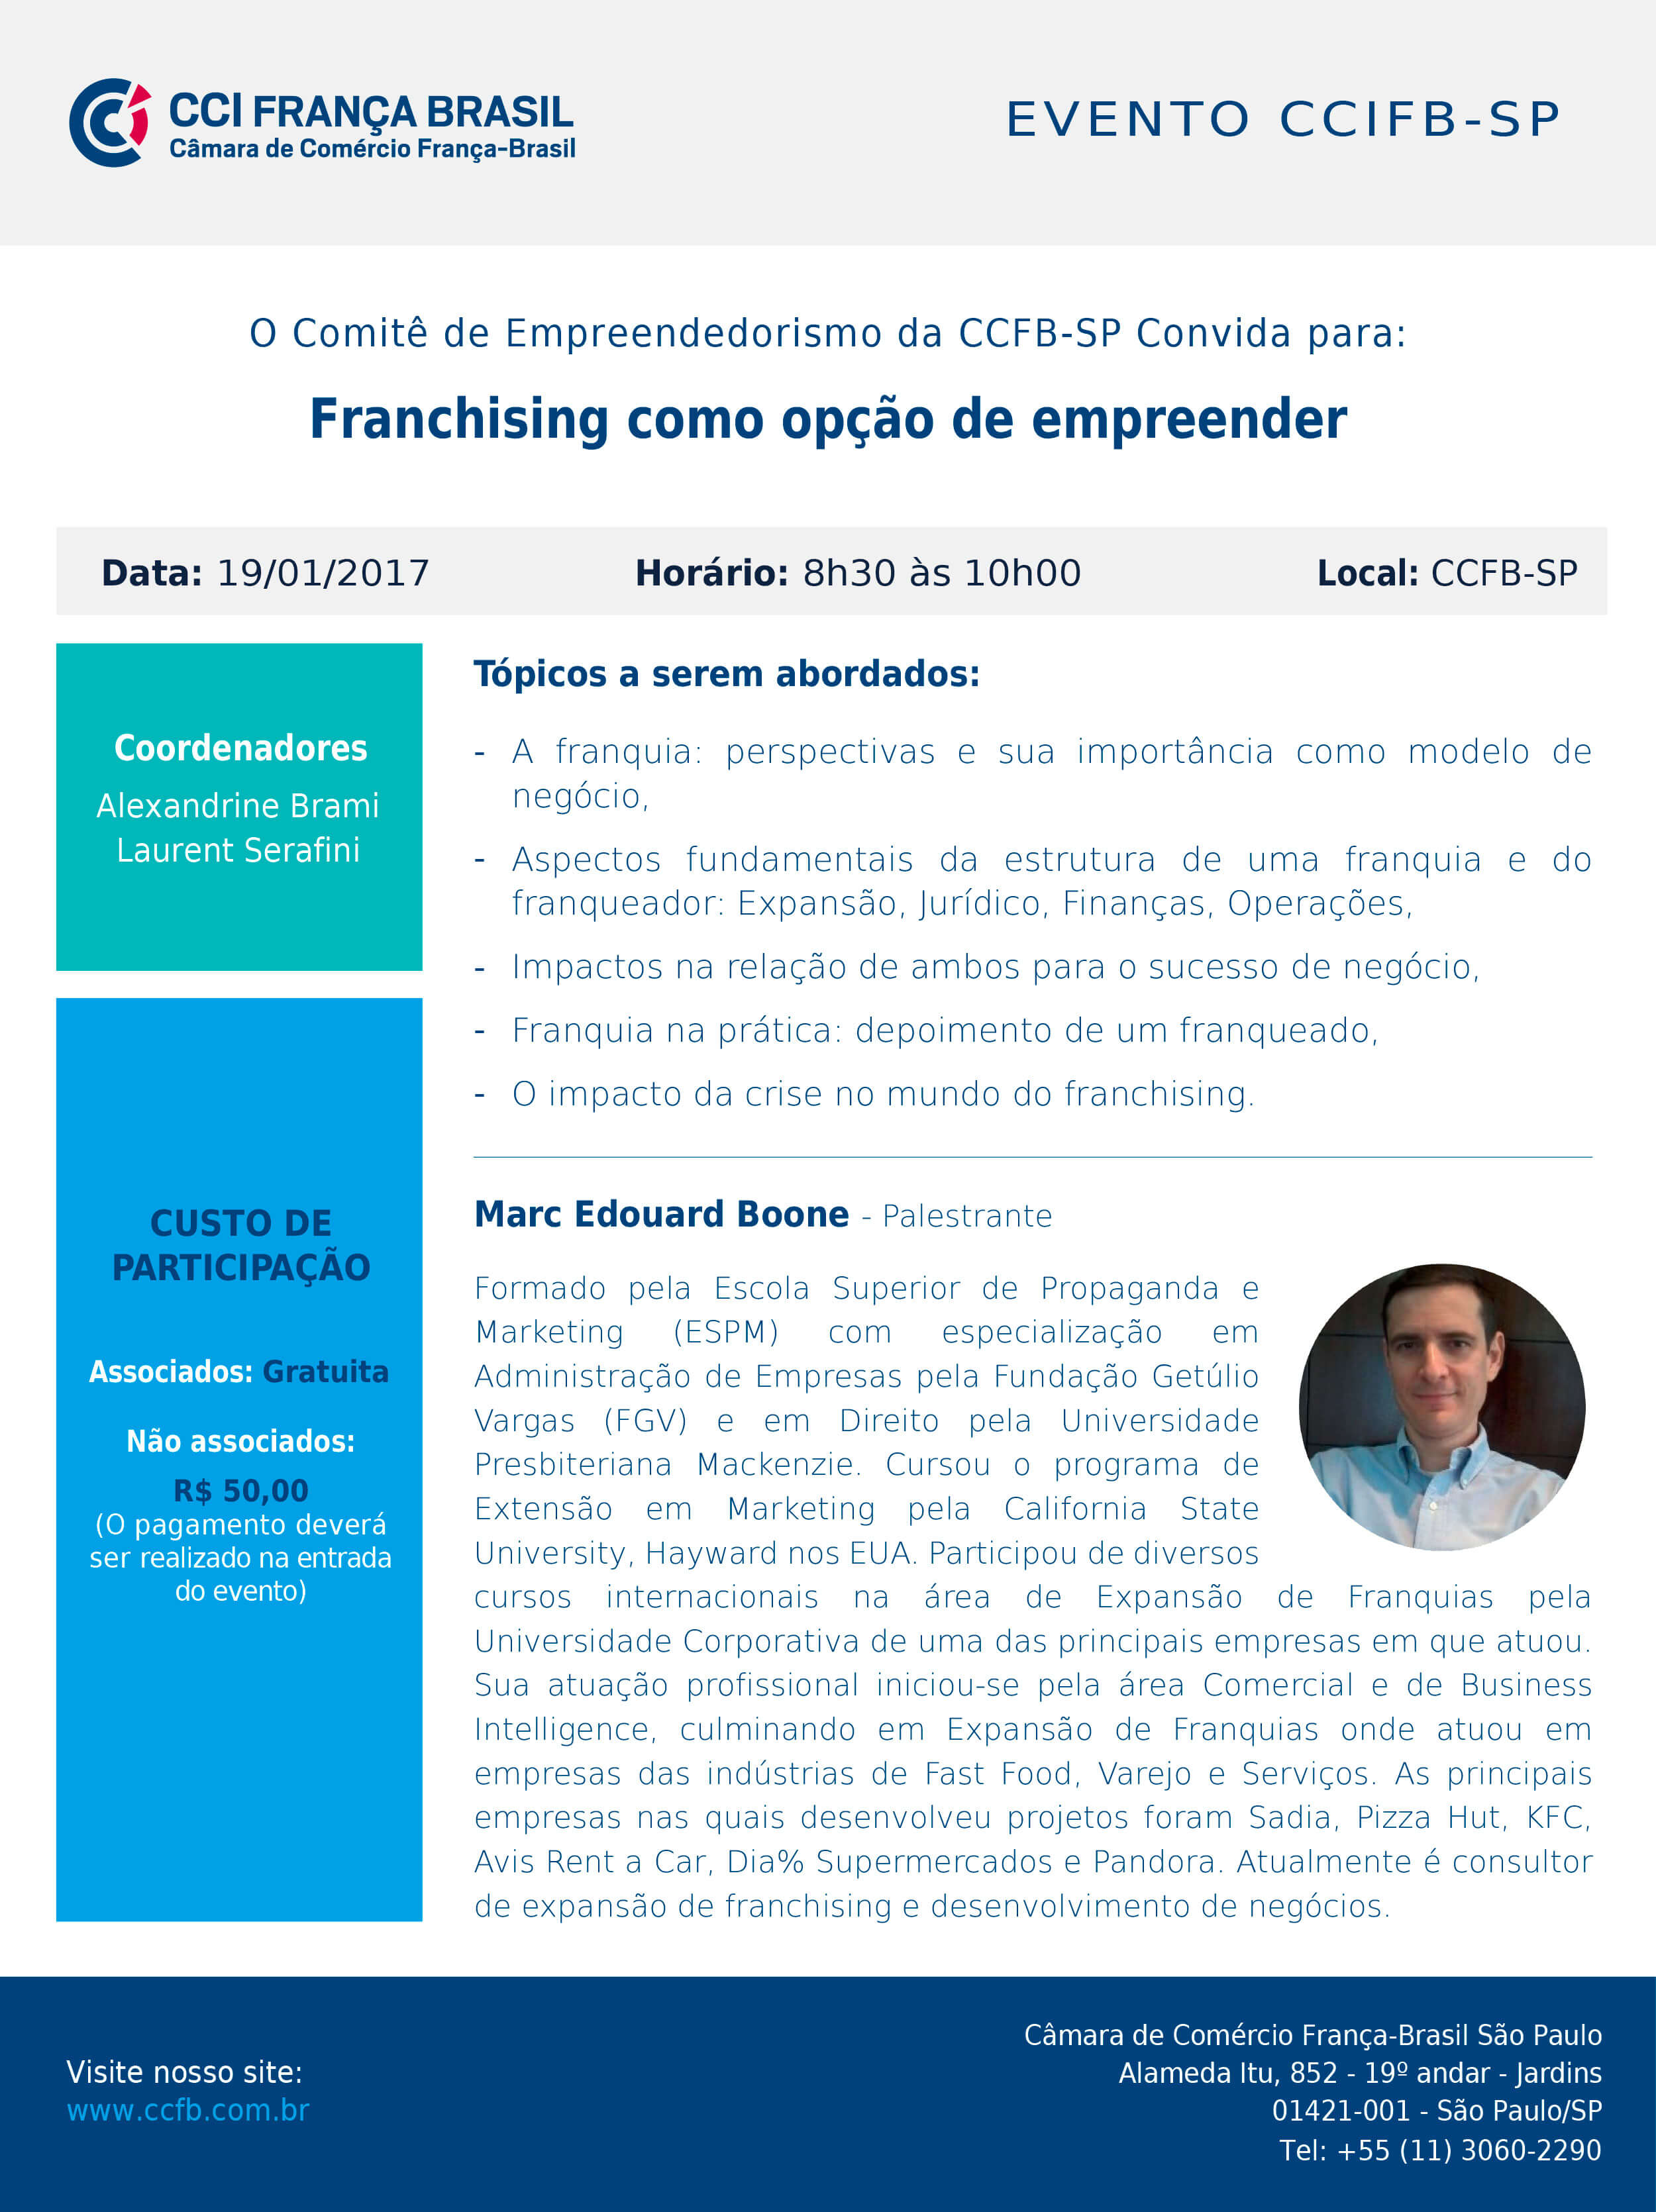 franchisingcomoopcaoempreender